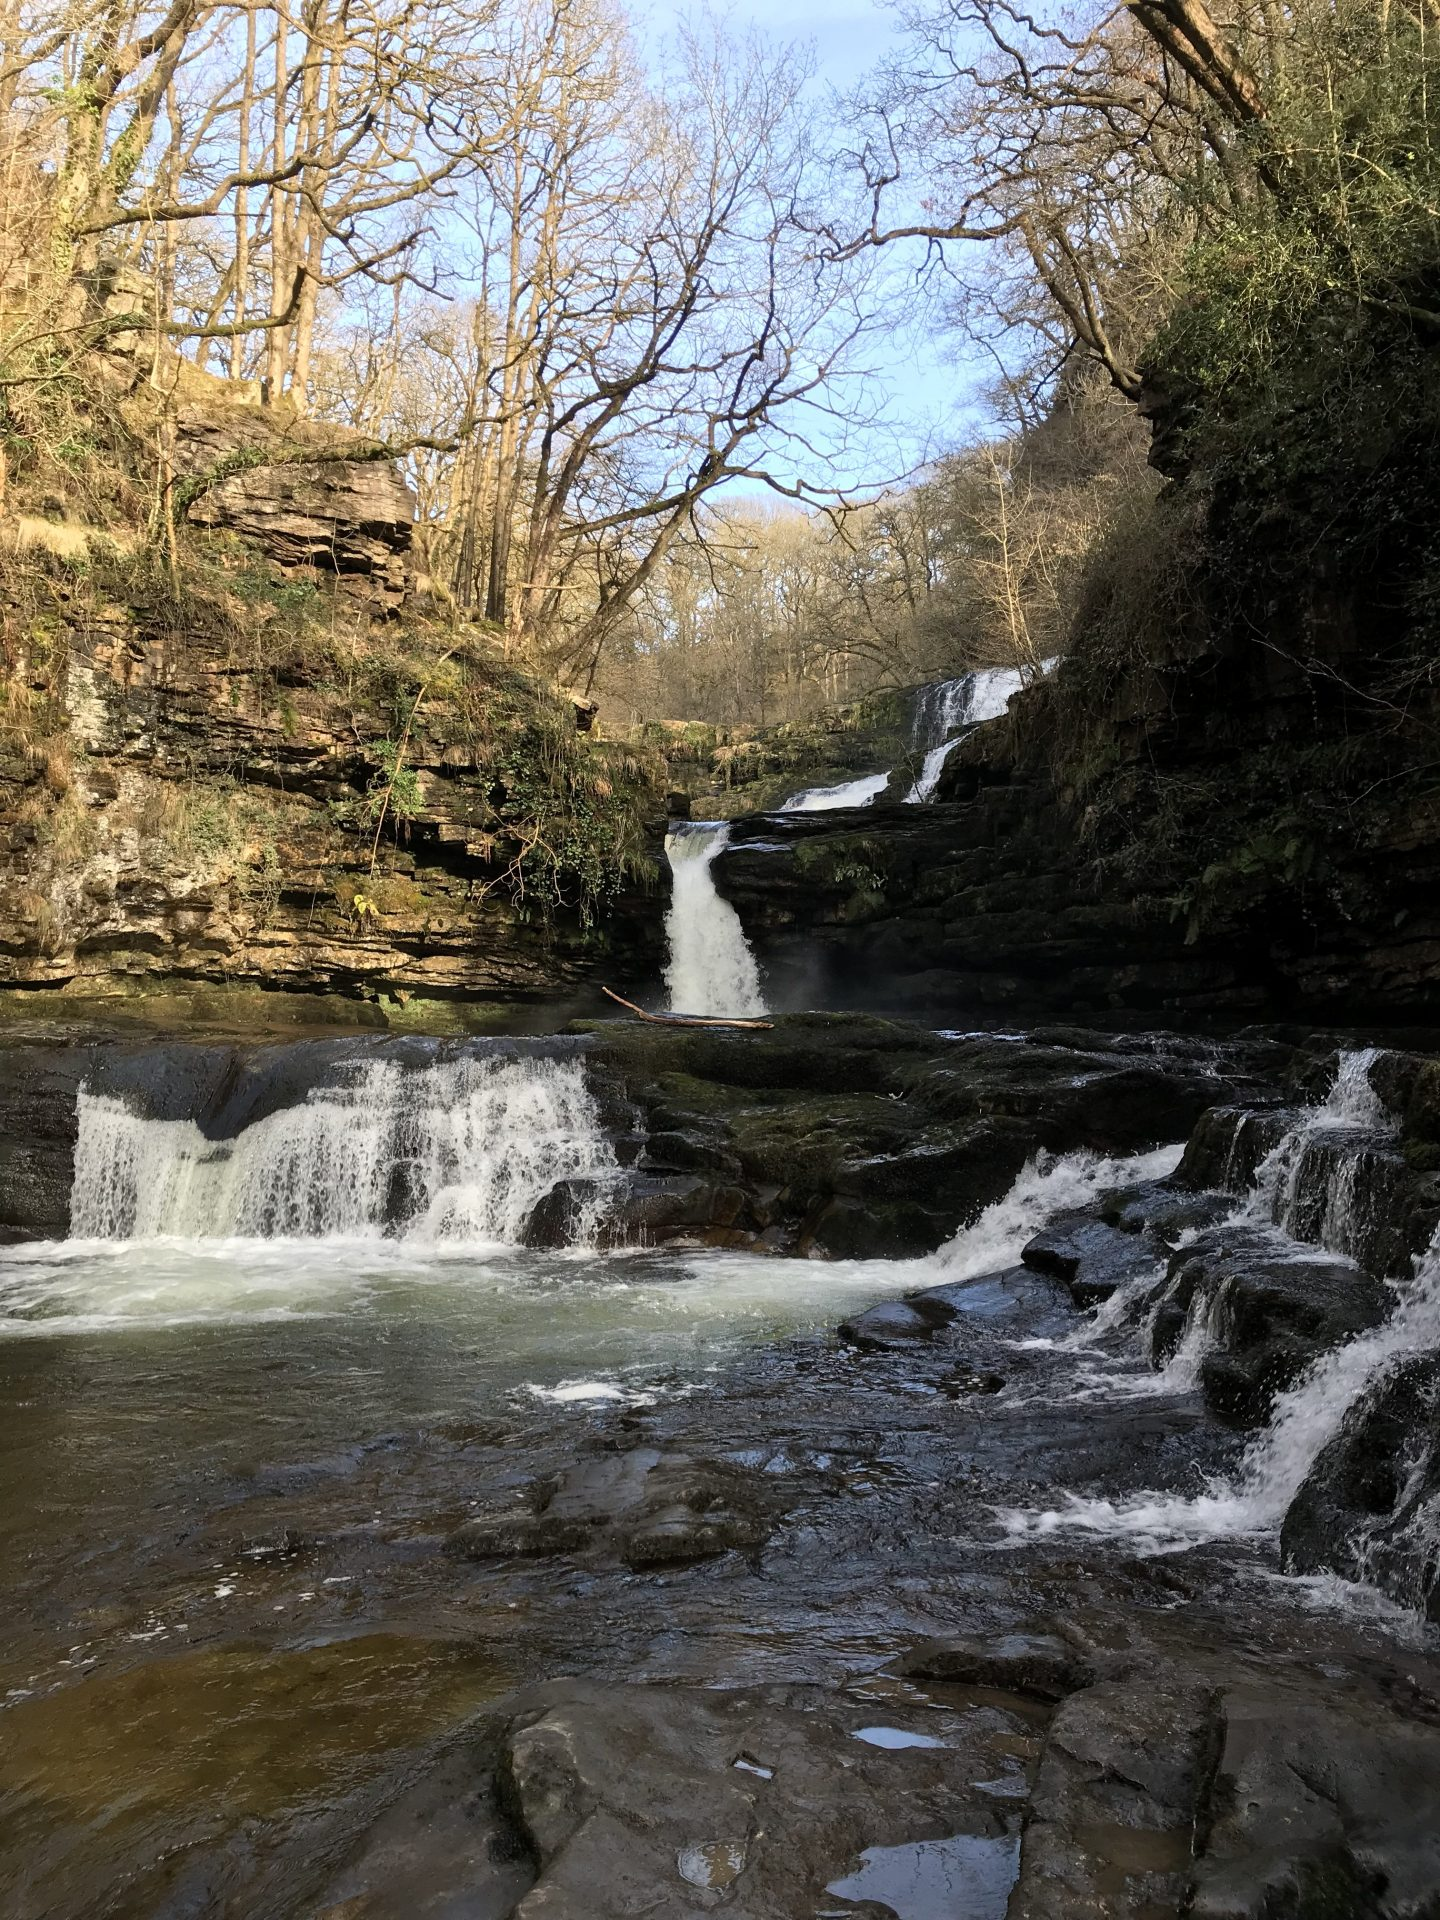 Tips for the 4 Waterfalls Walk | Brecon Beacons 4 Waterfalls